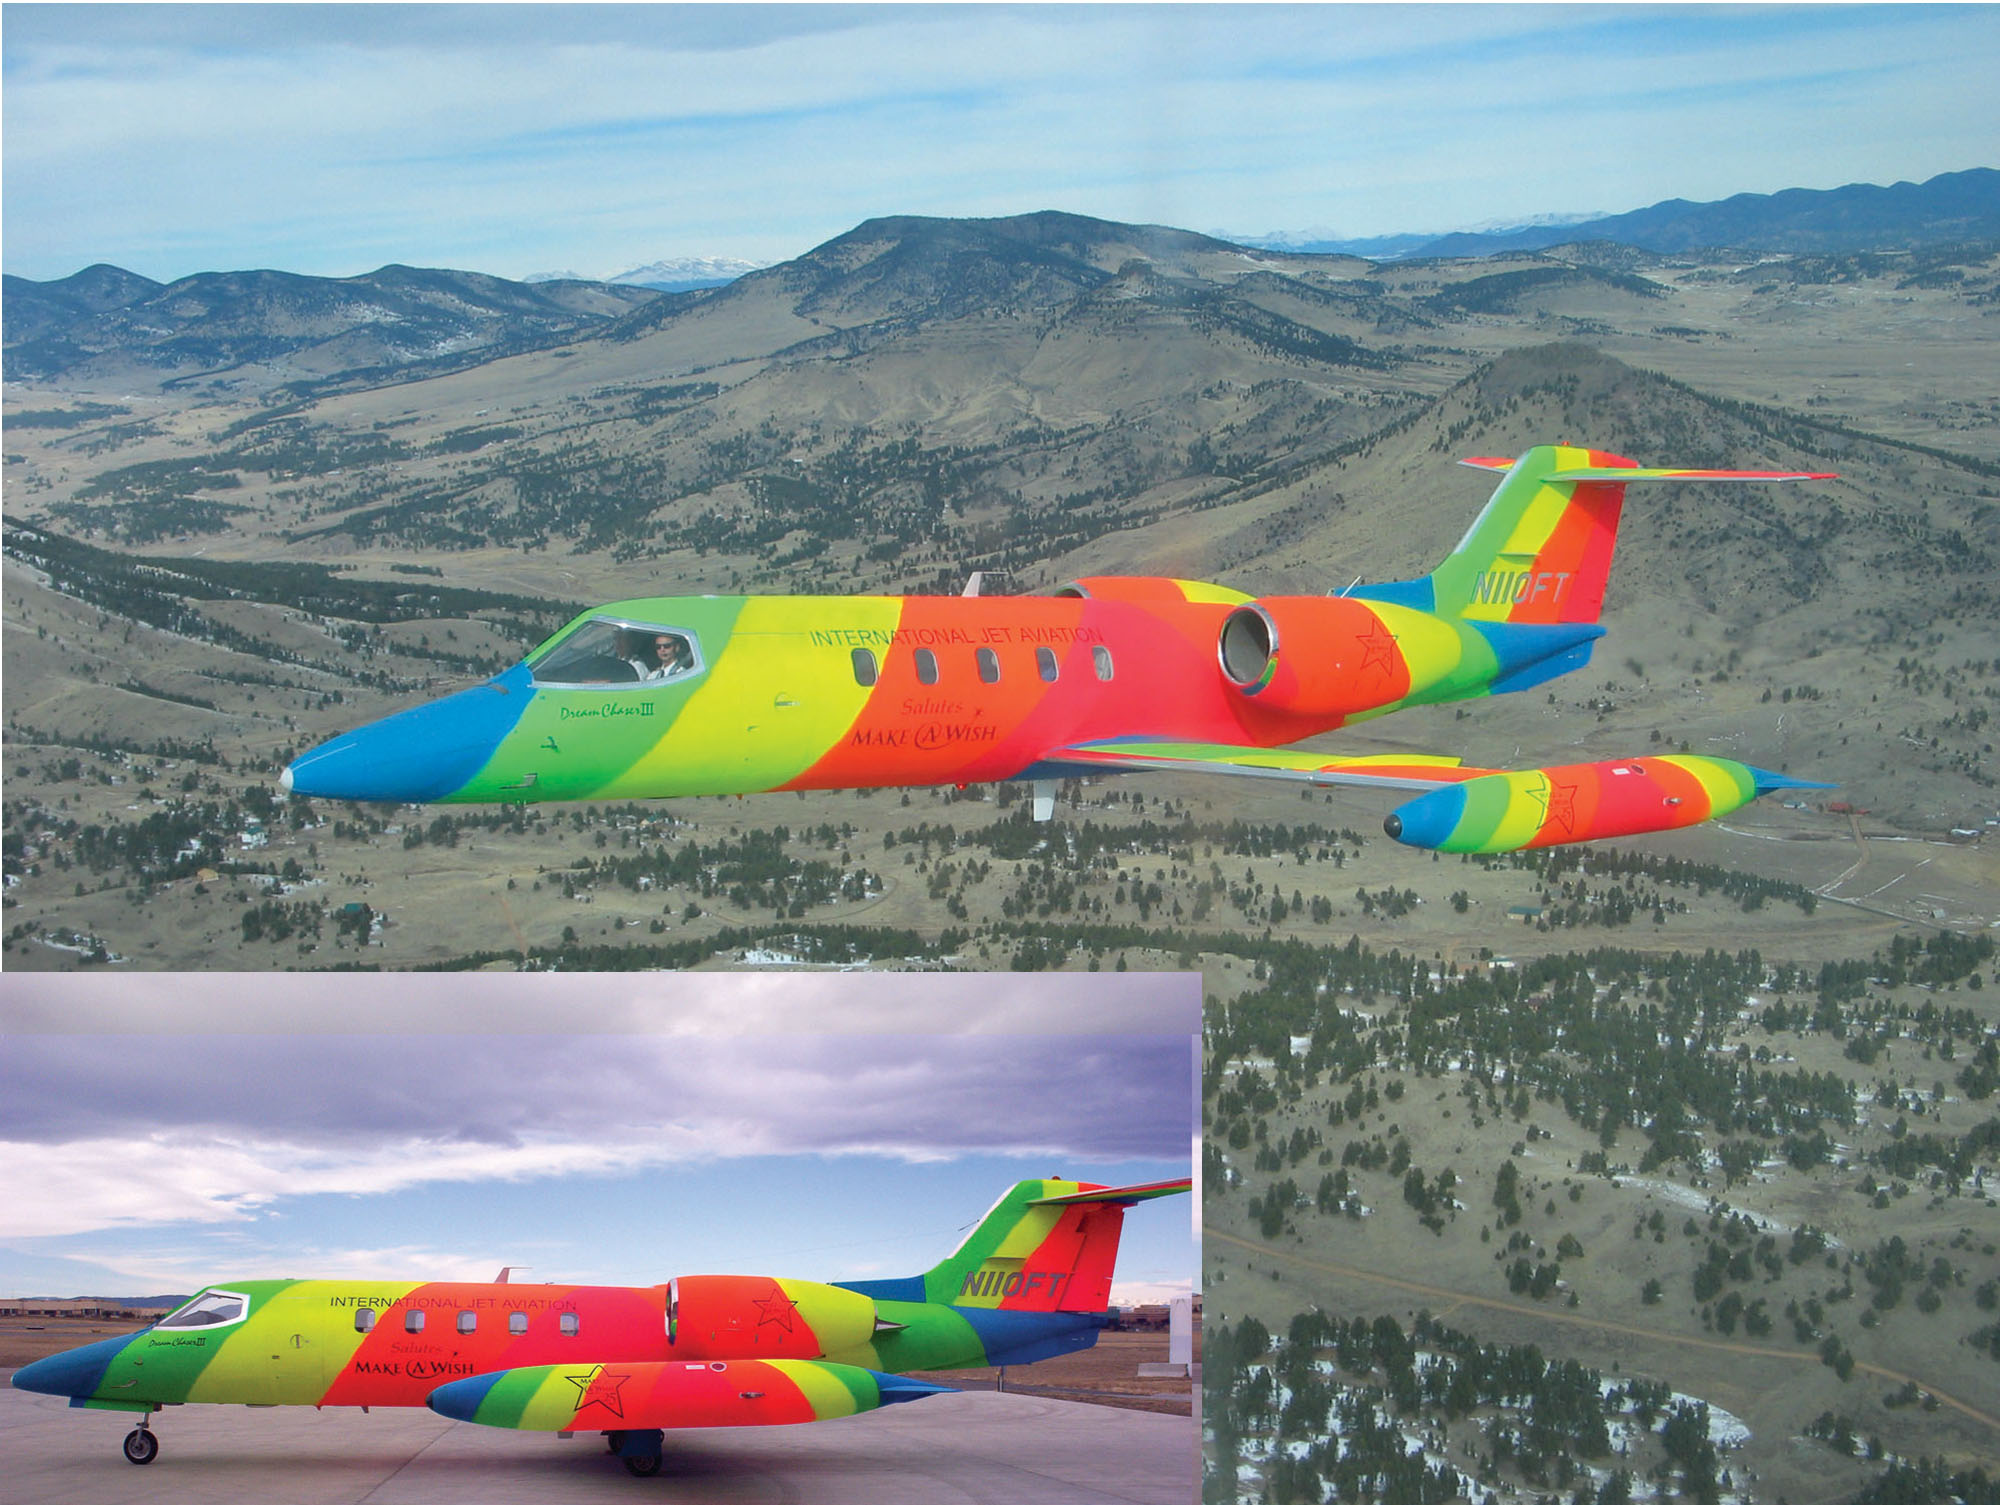 Rainbow-painted Jet takes to the Skies